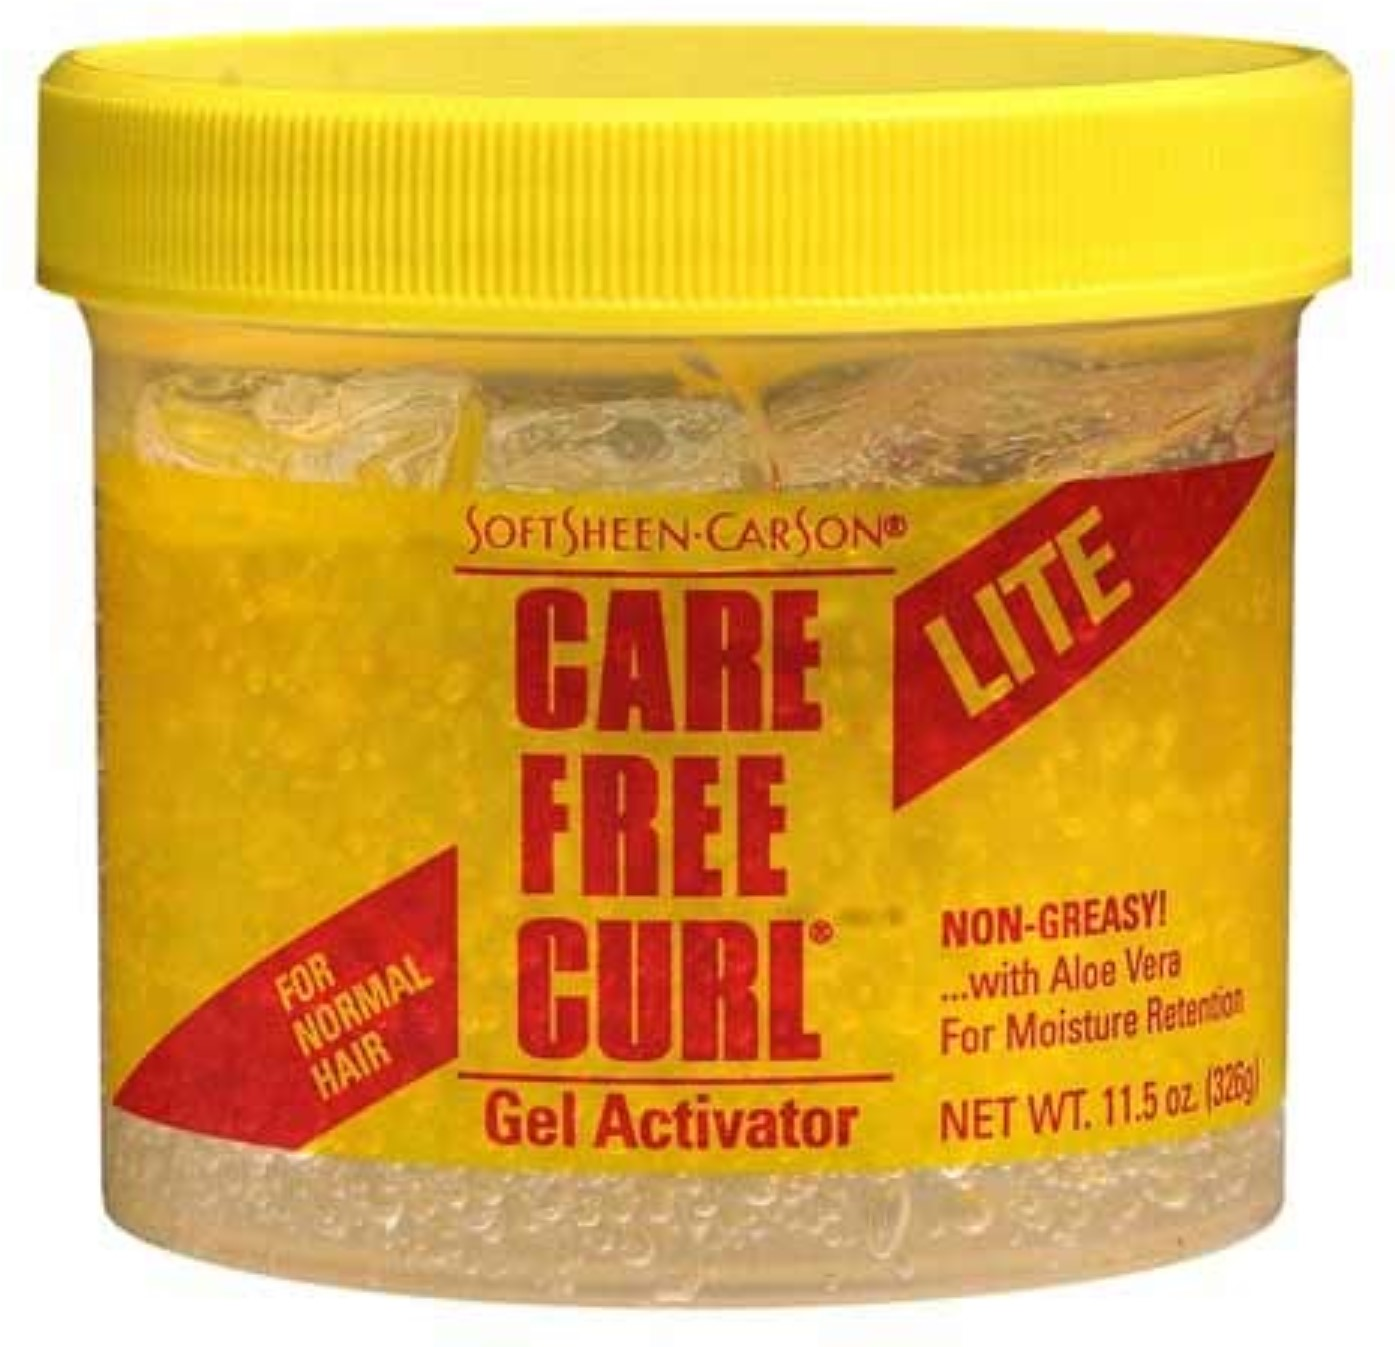 SoftSheen-Carson Care Free Curl Gel Activator 11.5 oz (Pack of 6)